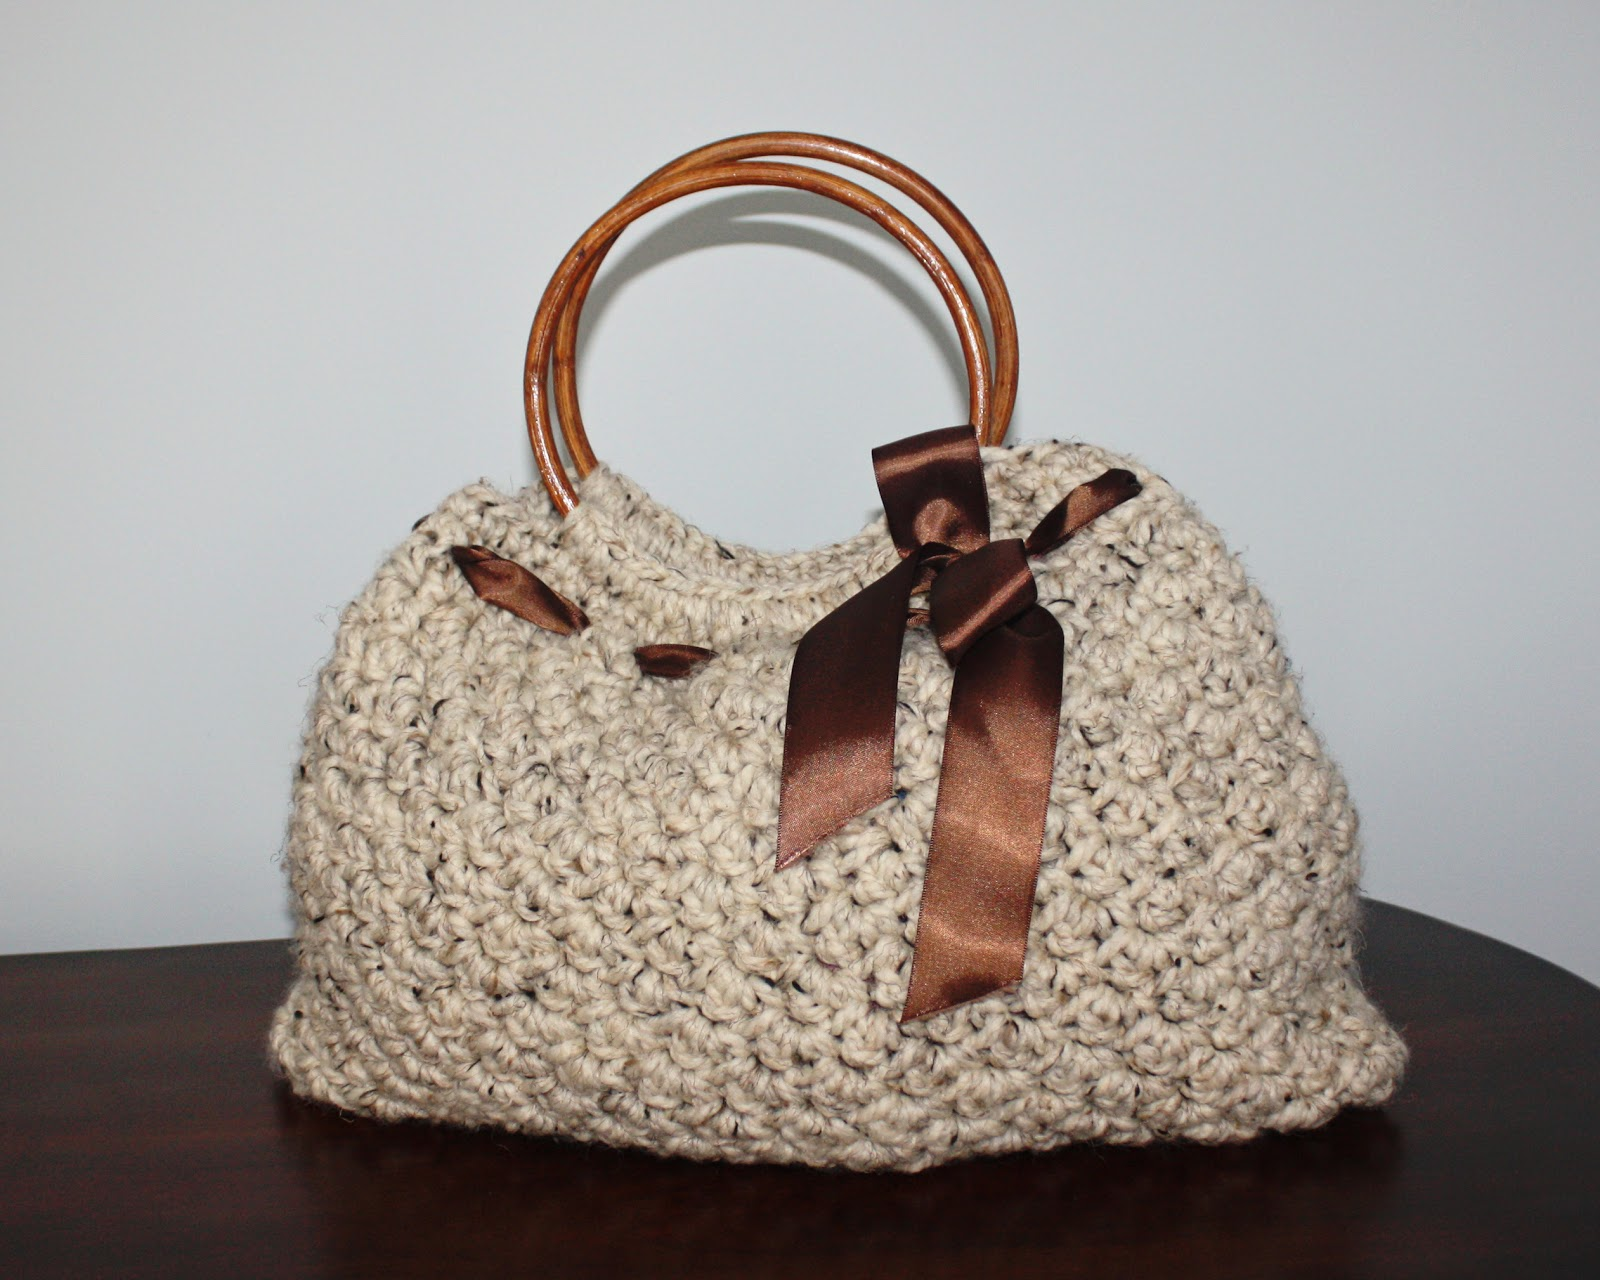 Crochet Patterns For Purses And Bags : Pretty Darn Adorable Crochet: Free Patterns